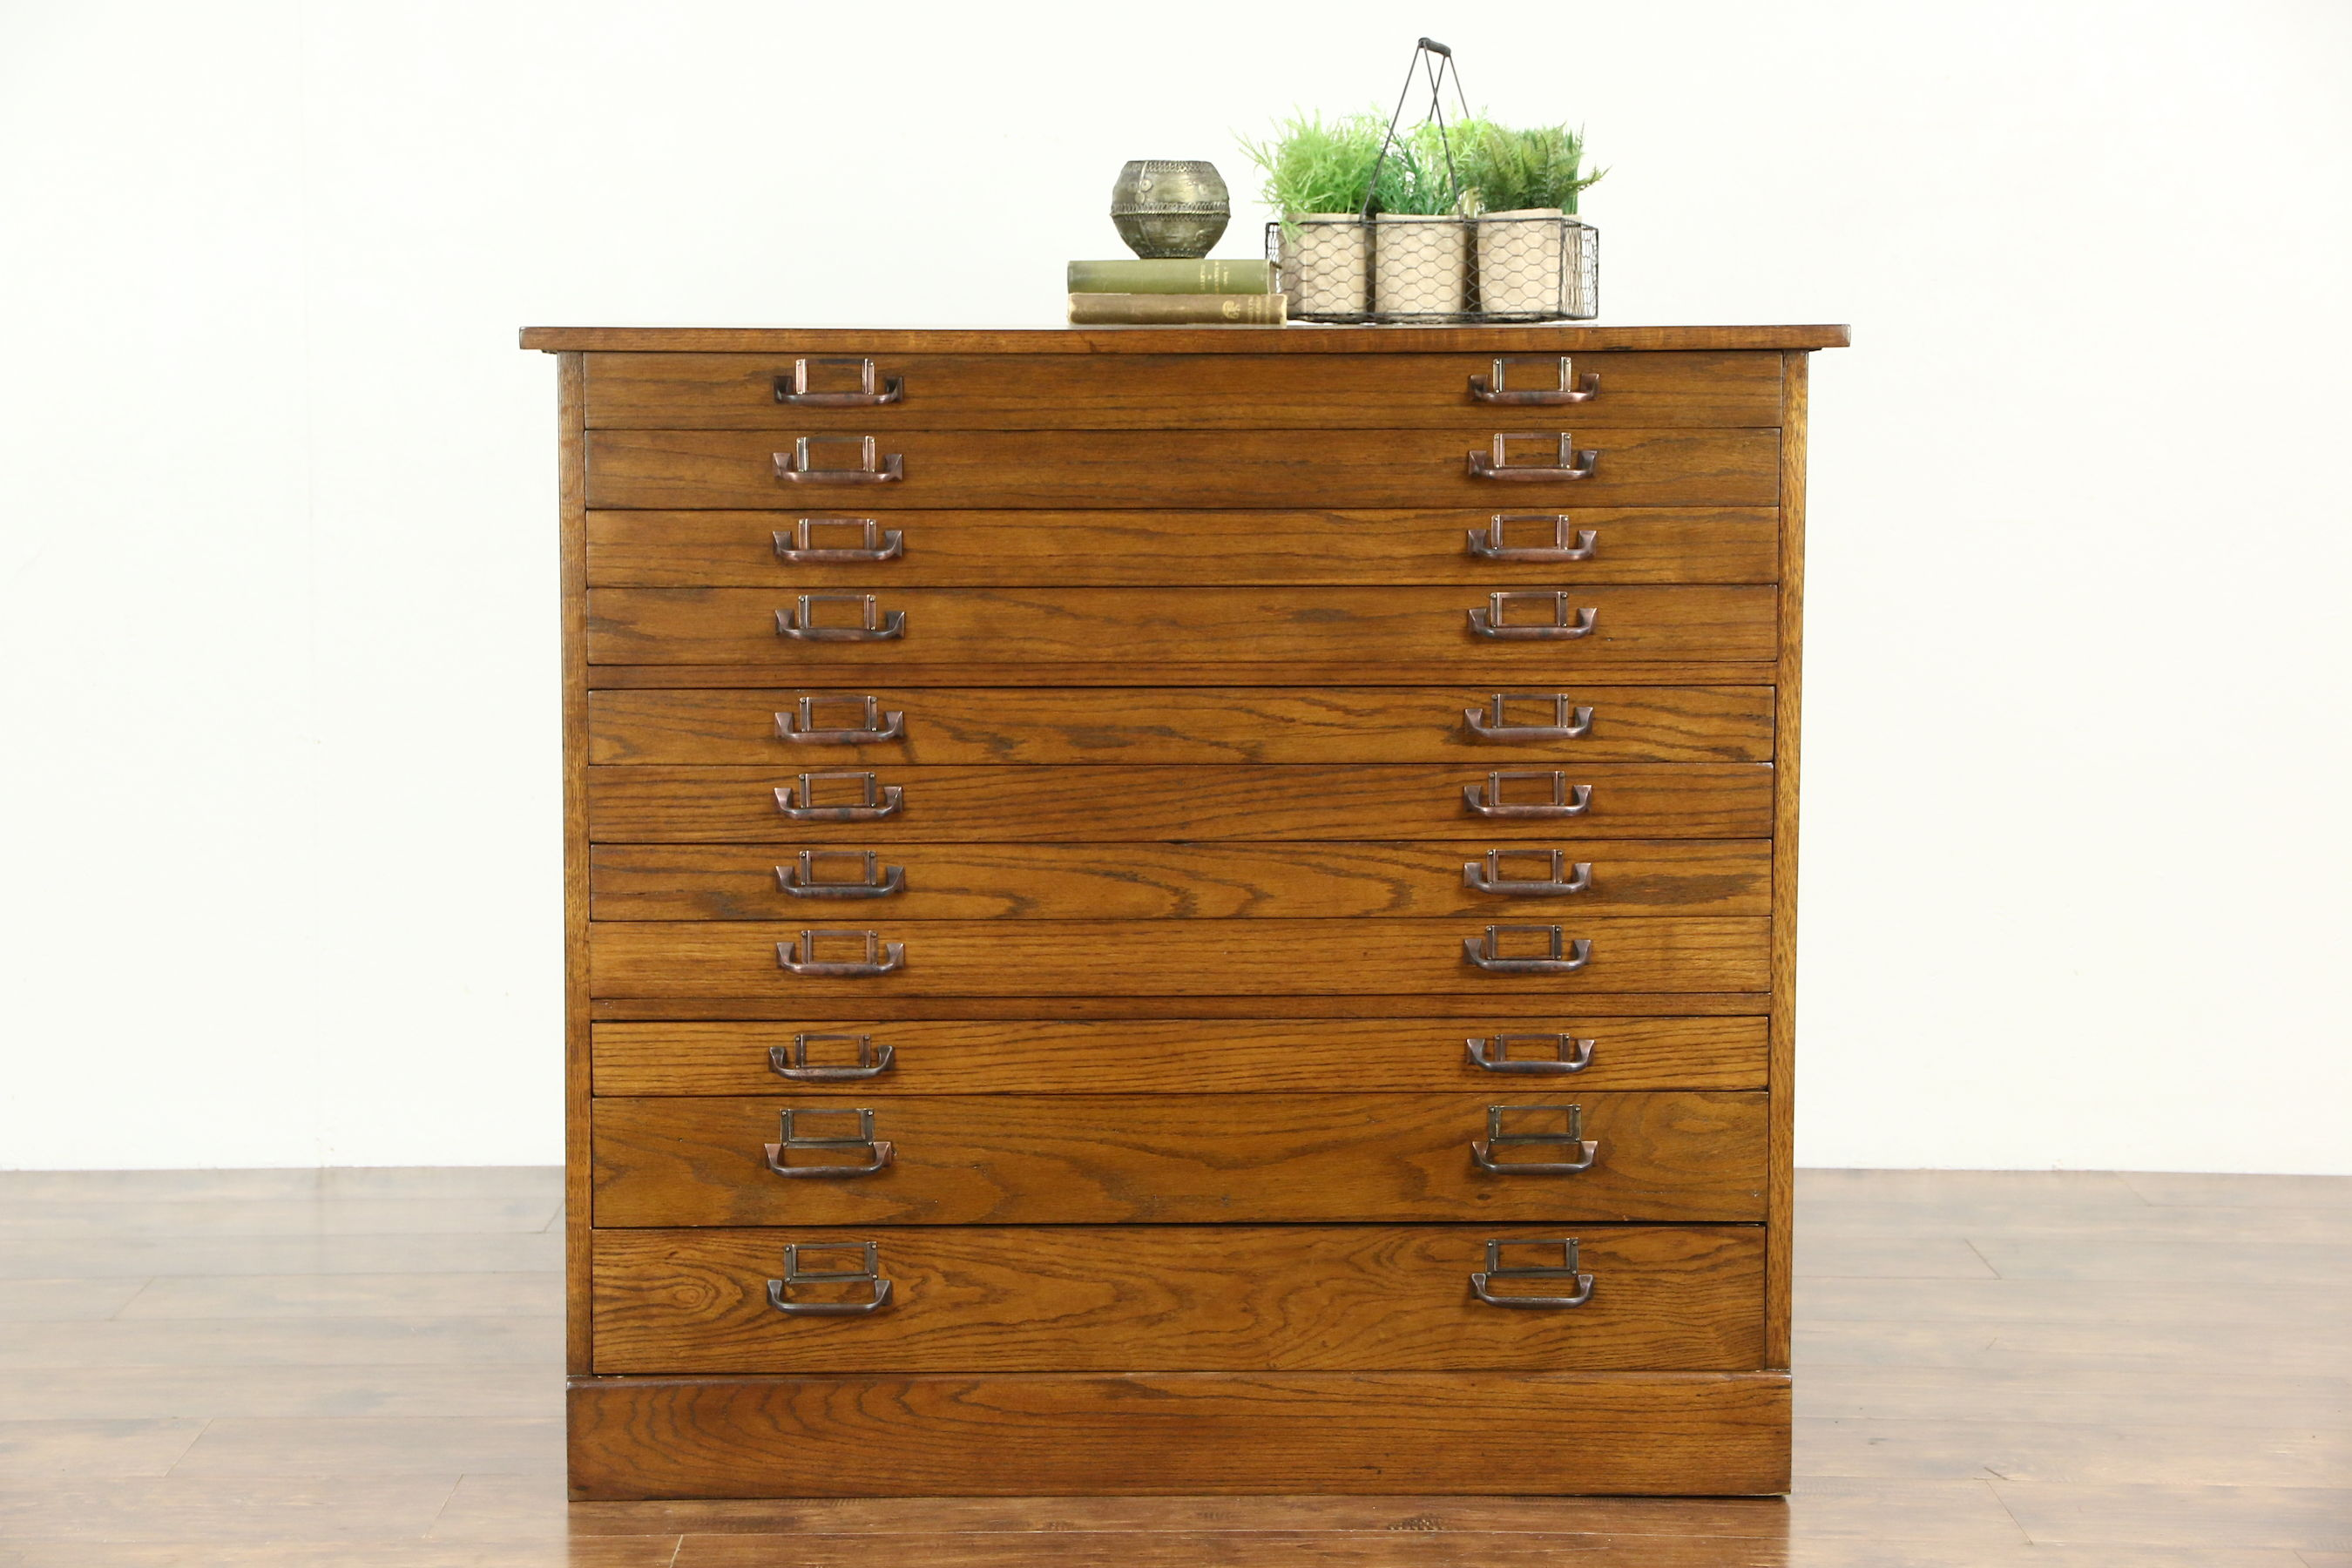 writing hinges inset des large drawer fleur front nautical desk mahogany with opens inlaid end office home high mapdesk map lis